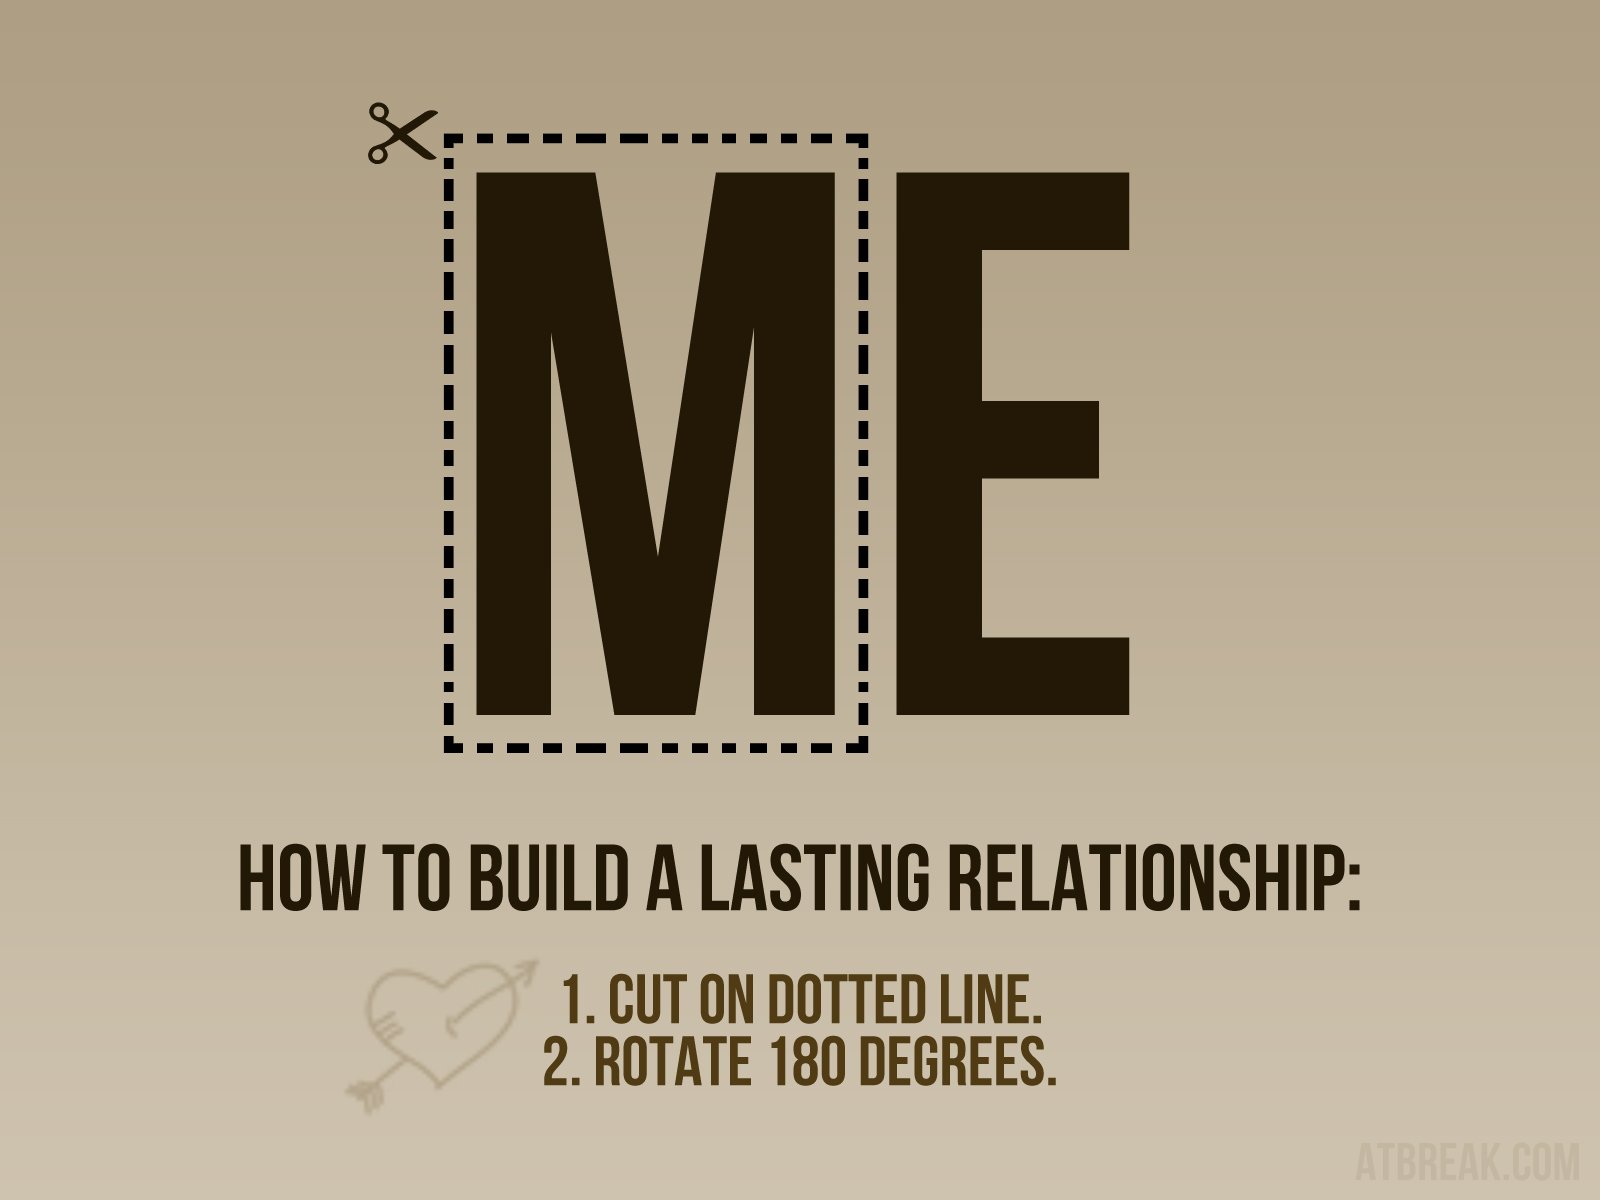 how-to-build-a-lasting-relationship.jpg